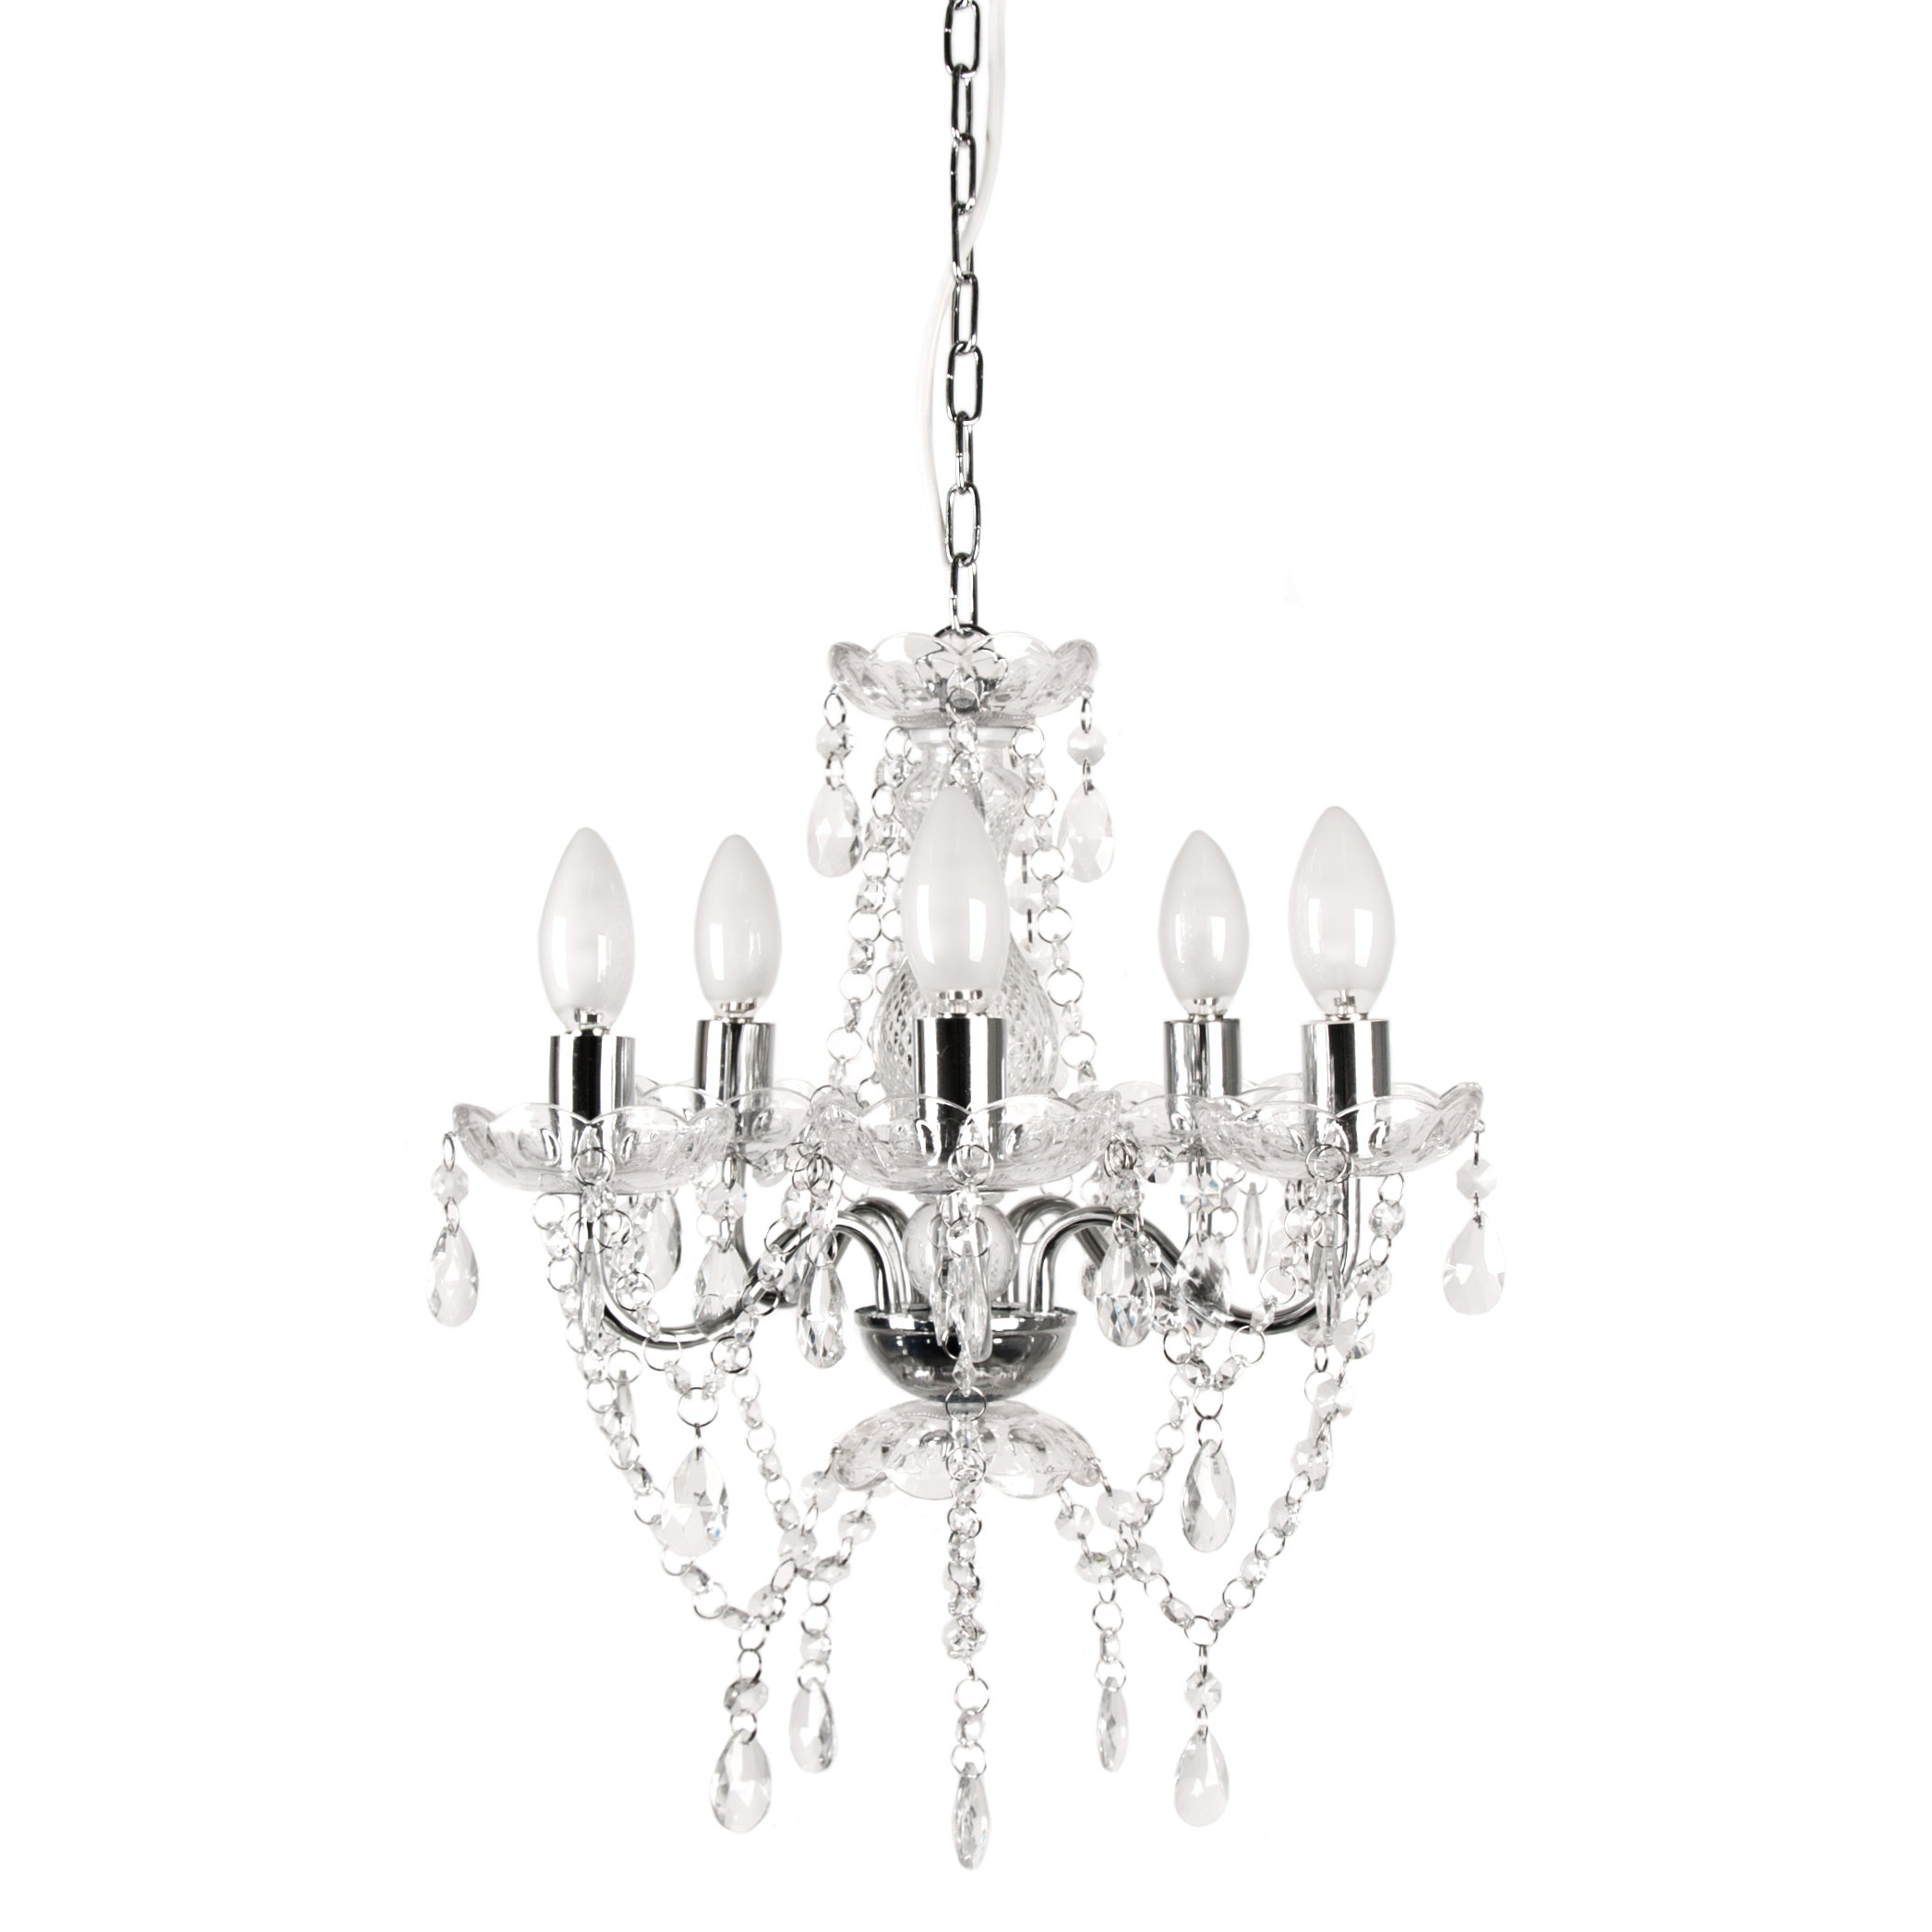 Blanchette 5 Light Candle Style Chandeliers Throughout Favorite 5 Light Candle Style Chandelier (View 8 of 20)